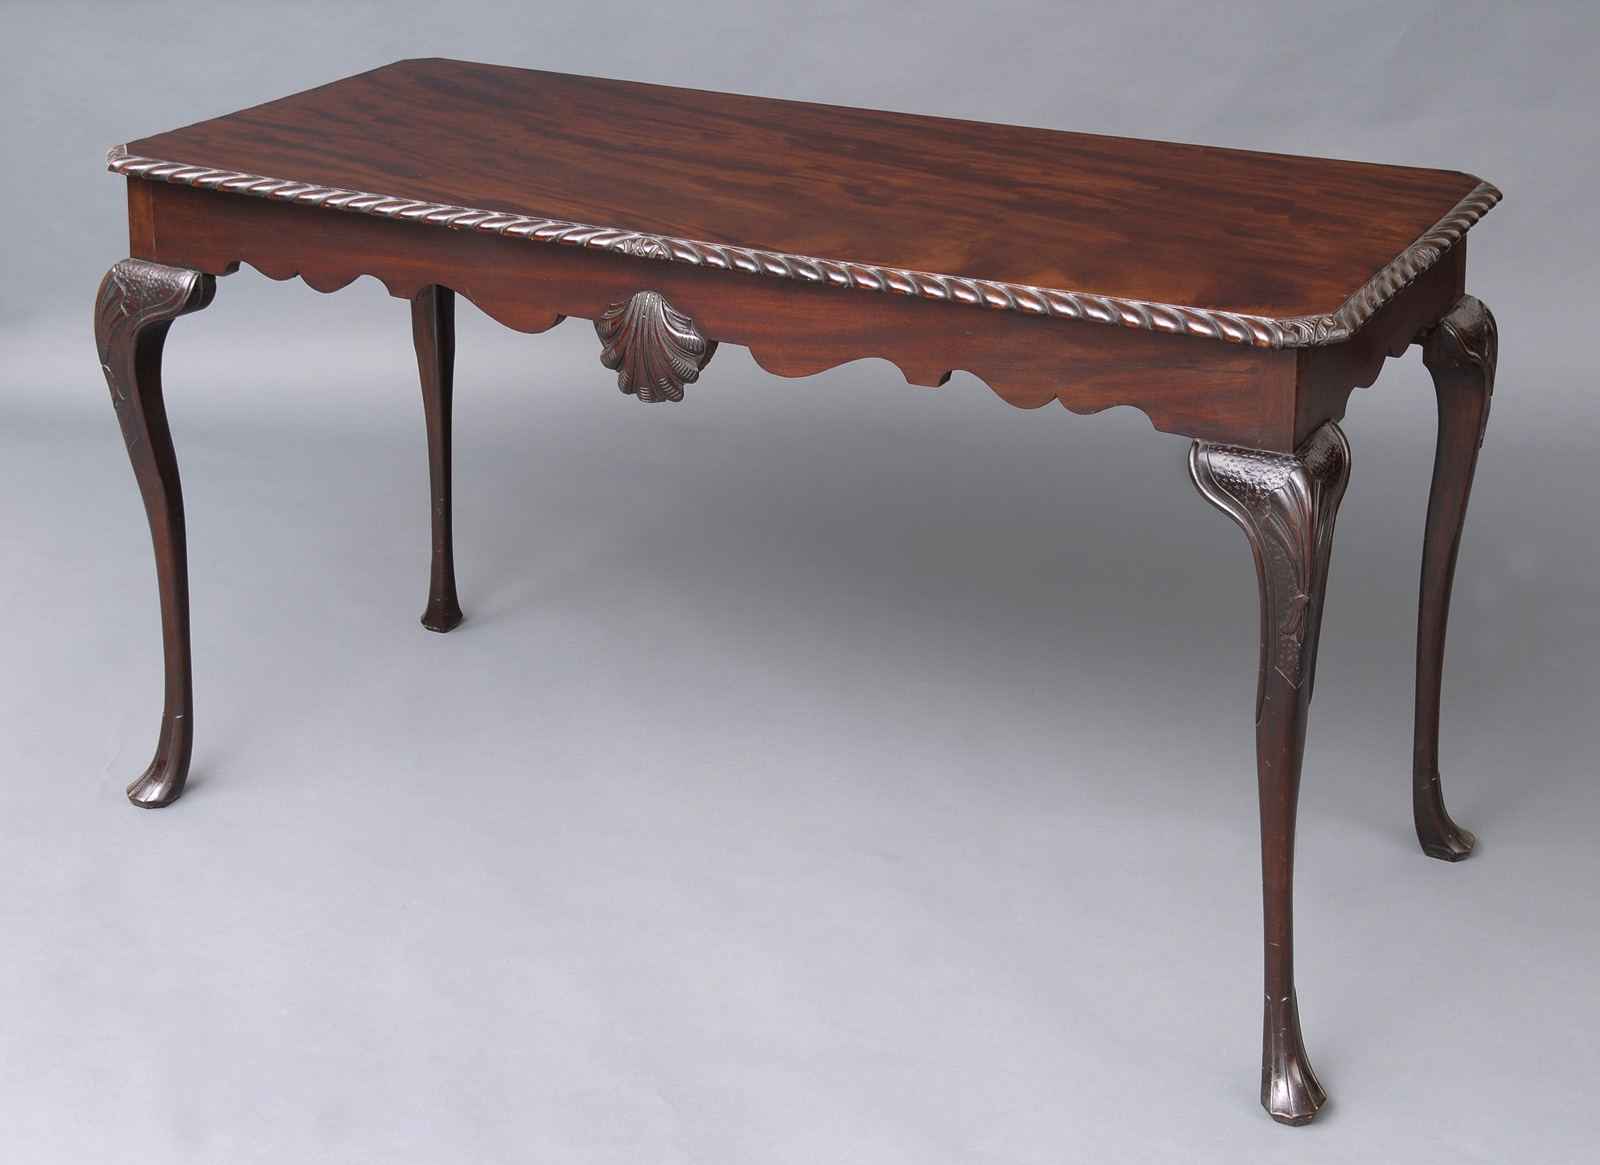 Captivating Irish Carved Mahogany Side Table, Circa 1850